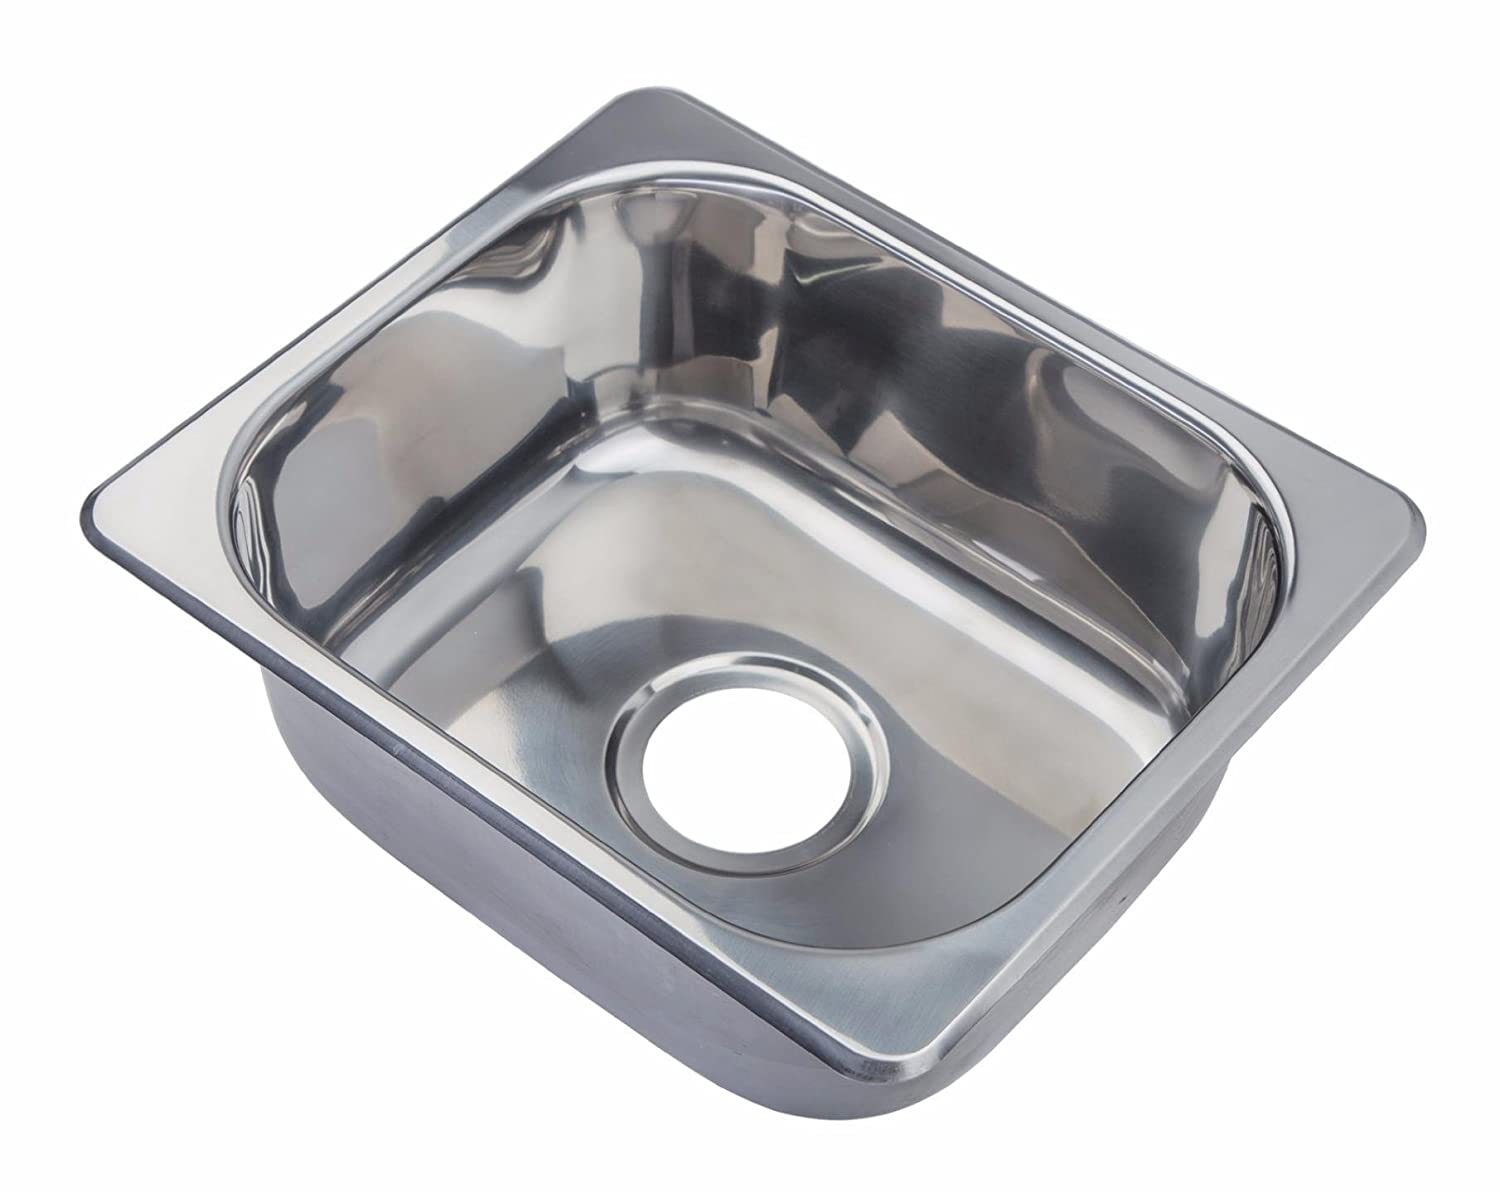 Hygenic small bowl topmount inset stainless steel kitchen sink a11 n o amazon co uk diy tools